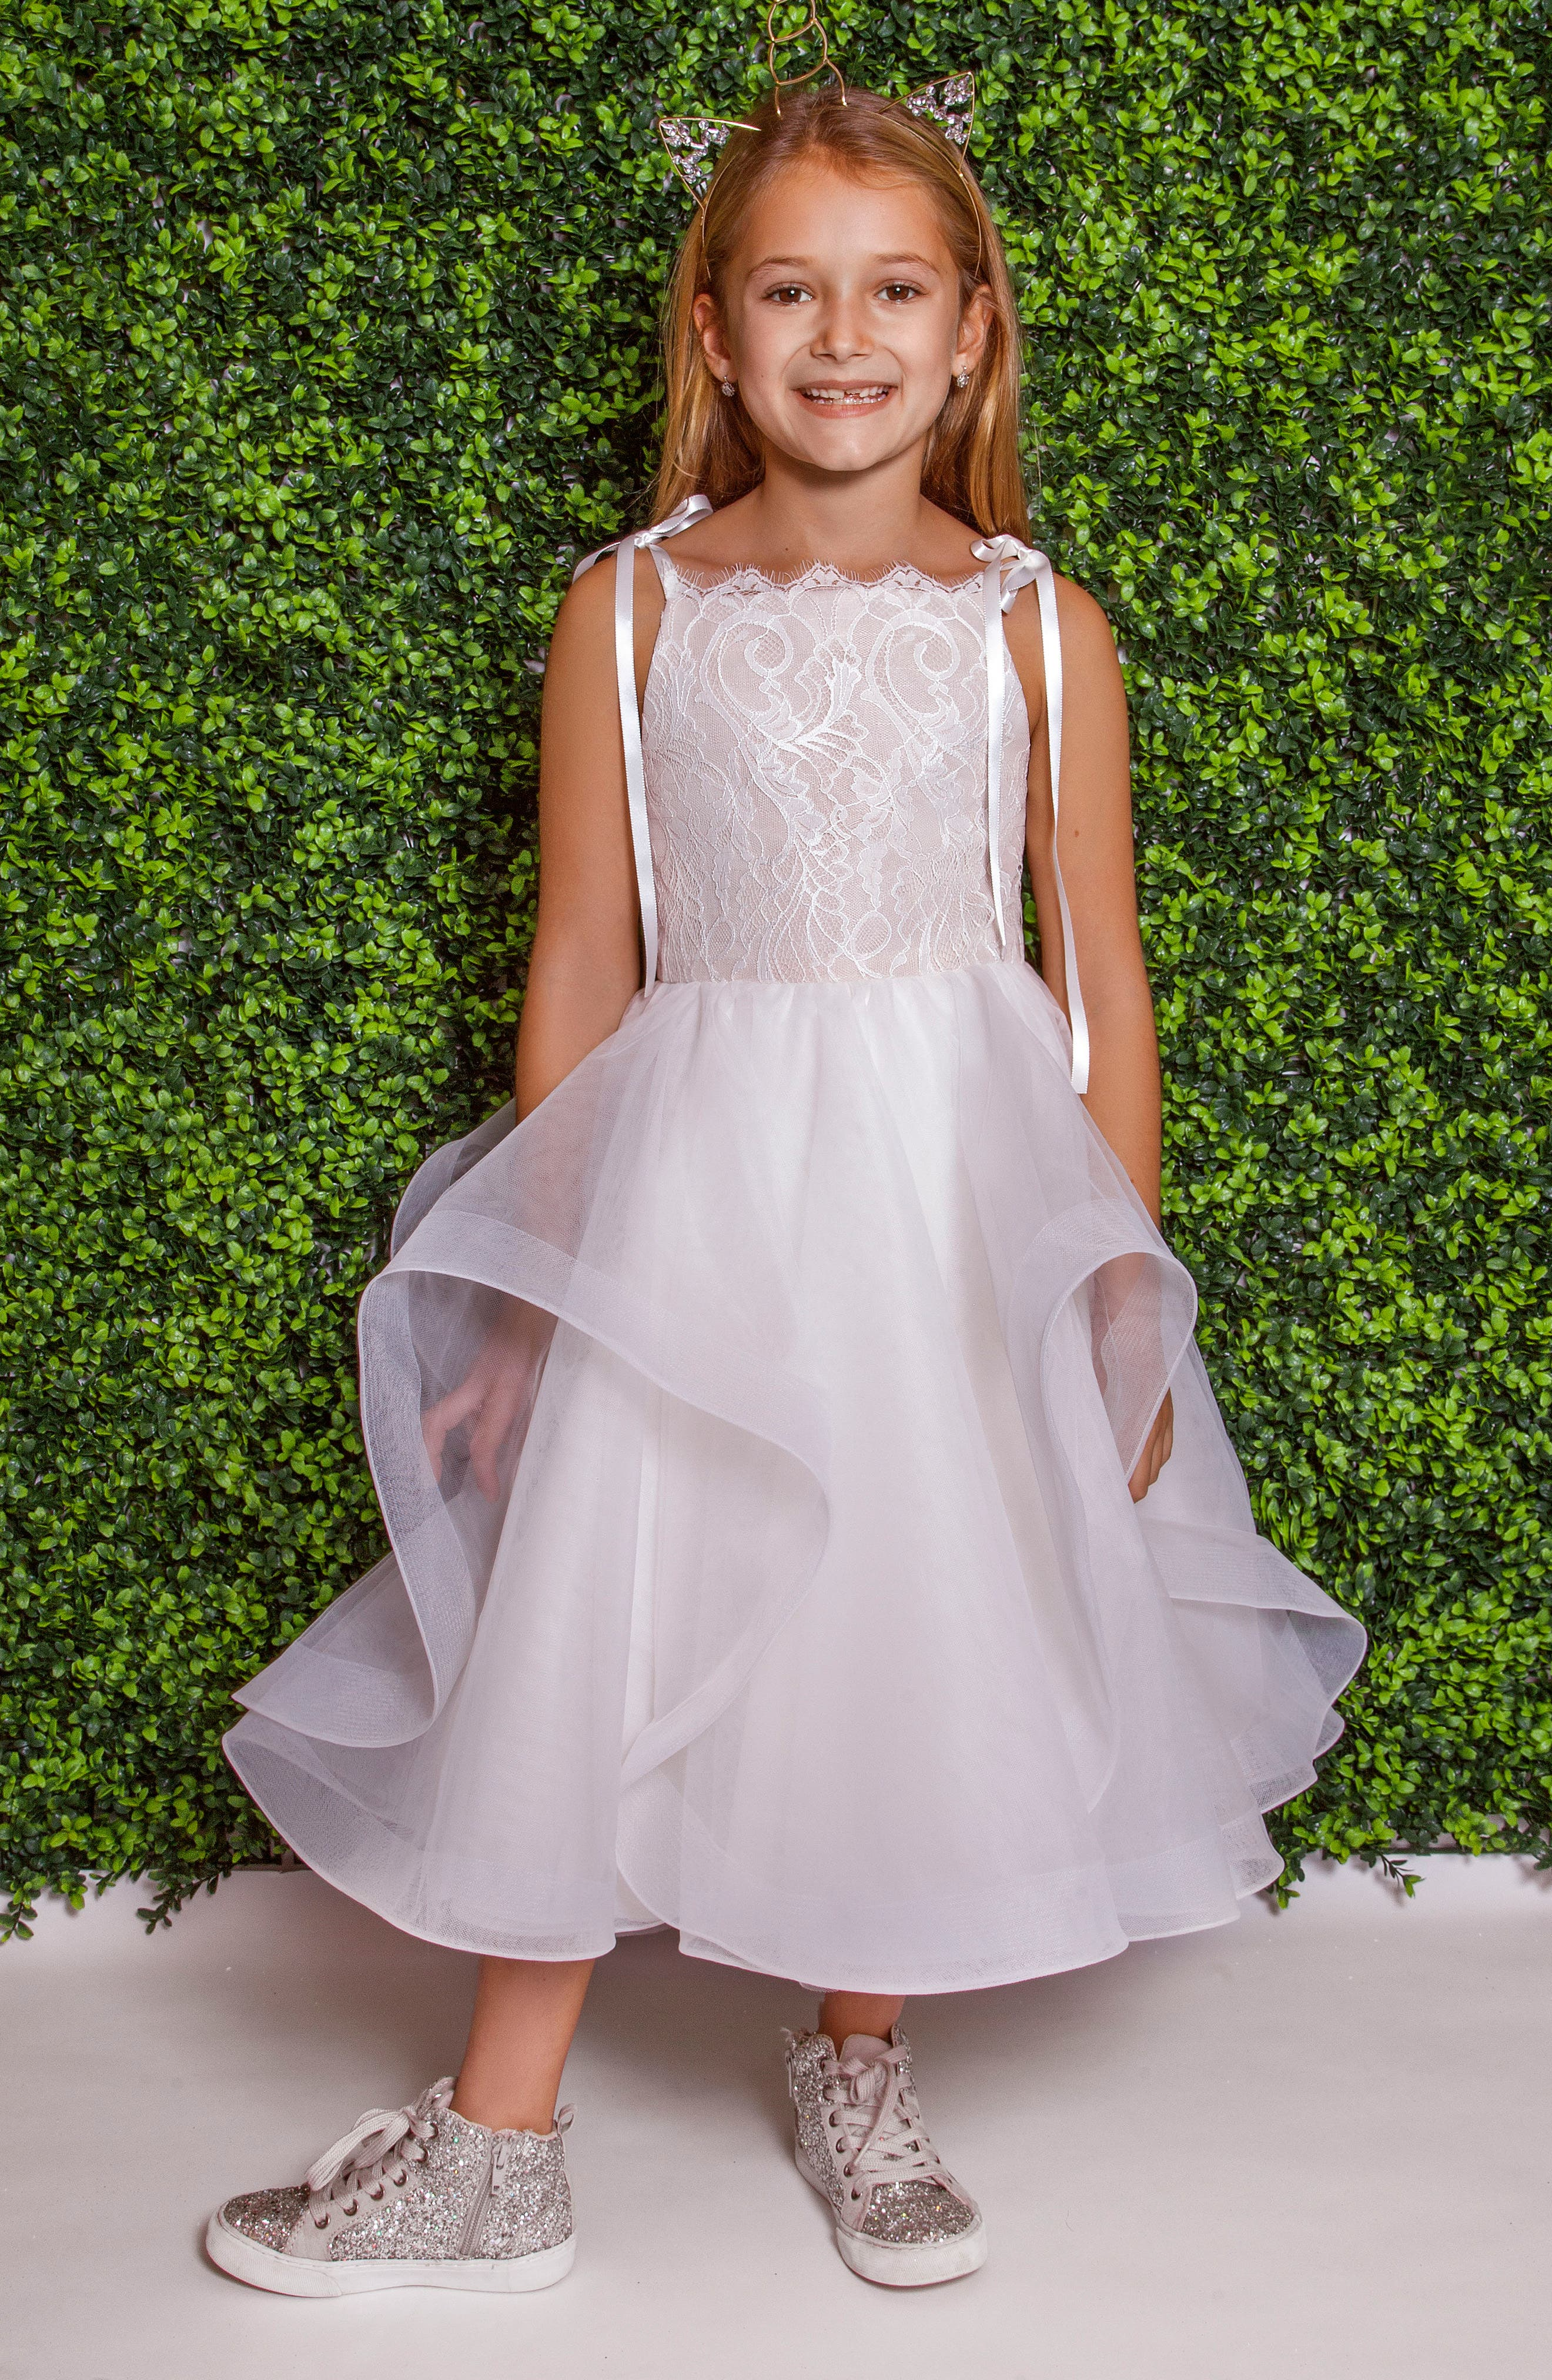 Lilian Lace & Tulle Flower Girl Dress,                         Main,                         color, Ivory/Cashmere